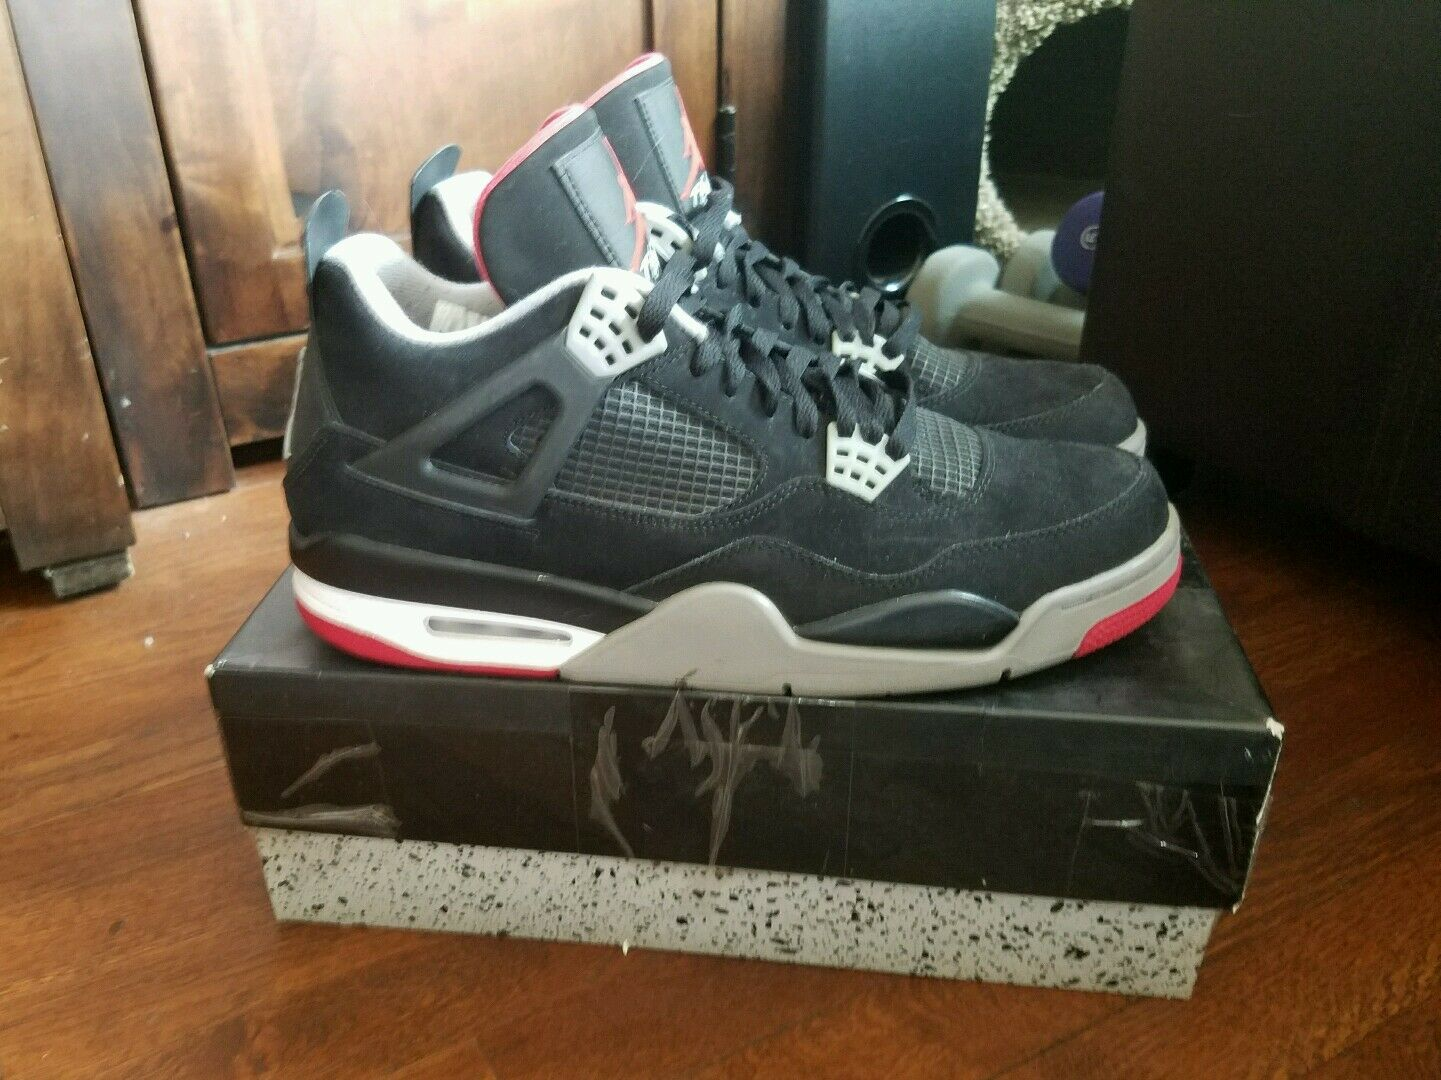 on sale 4e909 57346 Rare Rare Rare Limited Edition Deadstock Nike Air Jordan Retro 4 IV